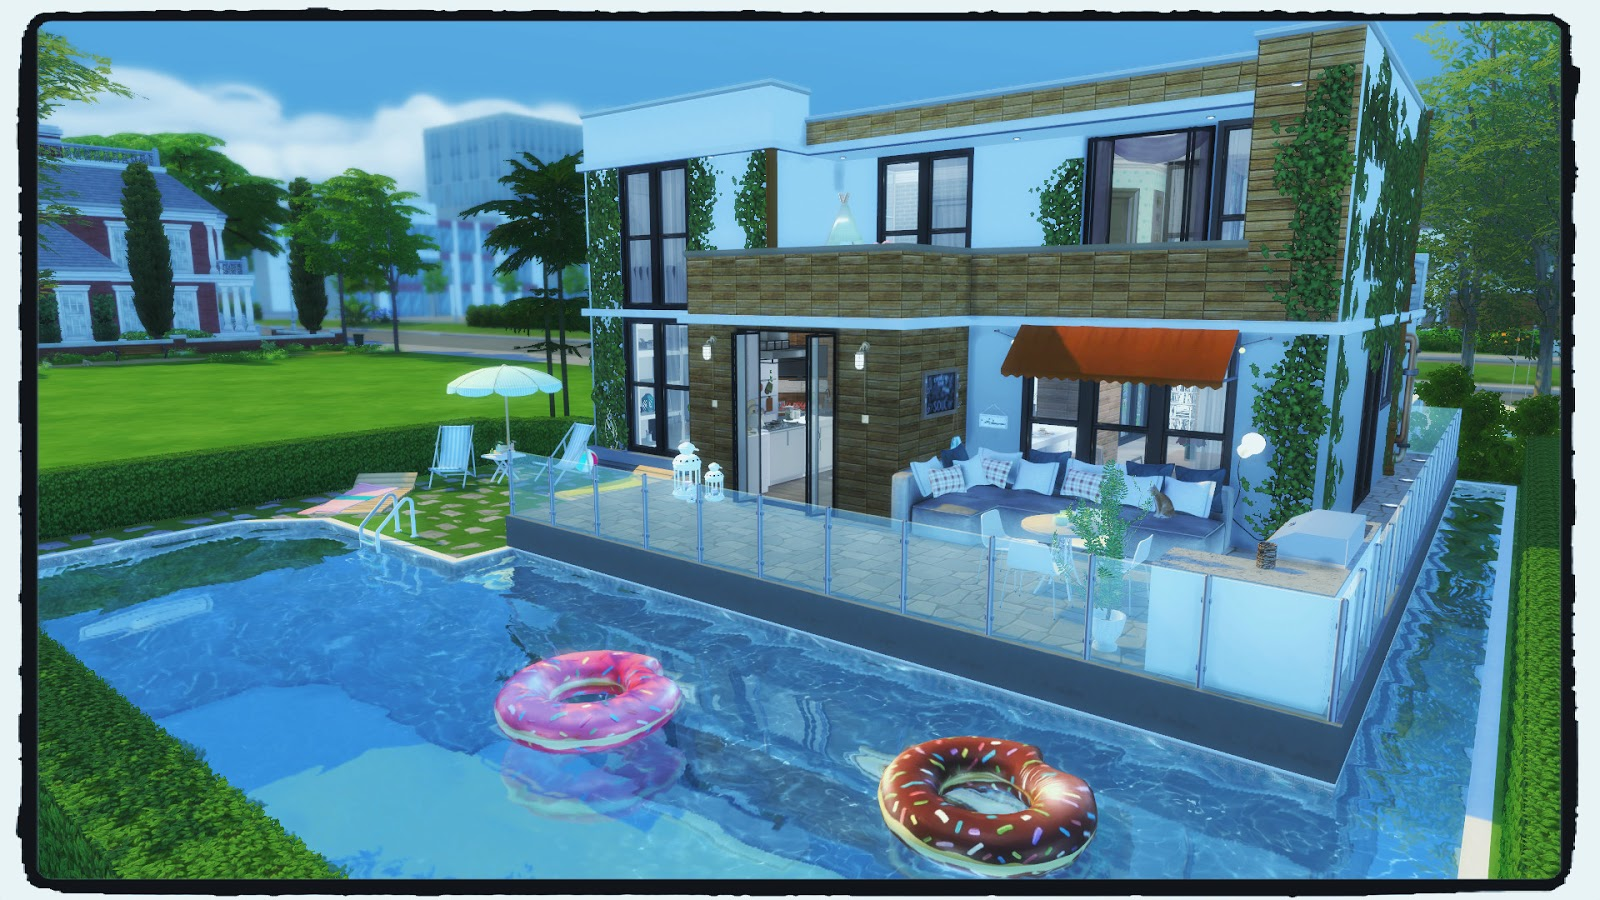 Pool Bauen Sims 4 Sims 4 Building On Newcrest Modern House With Pool